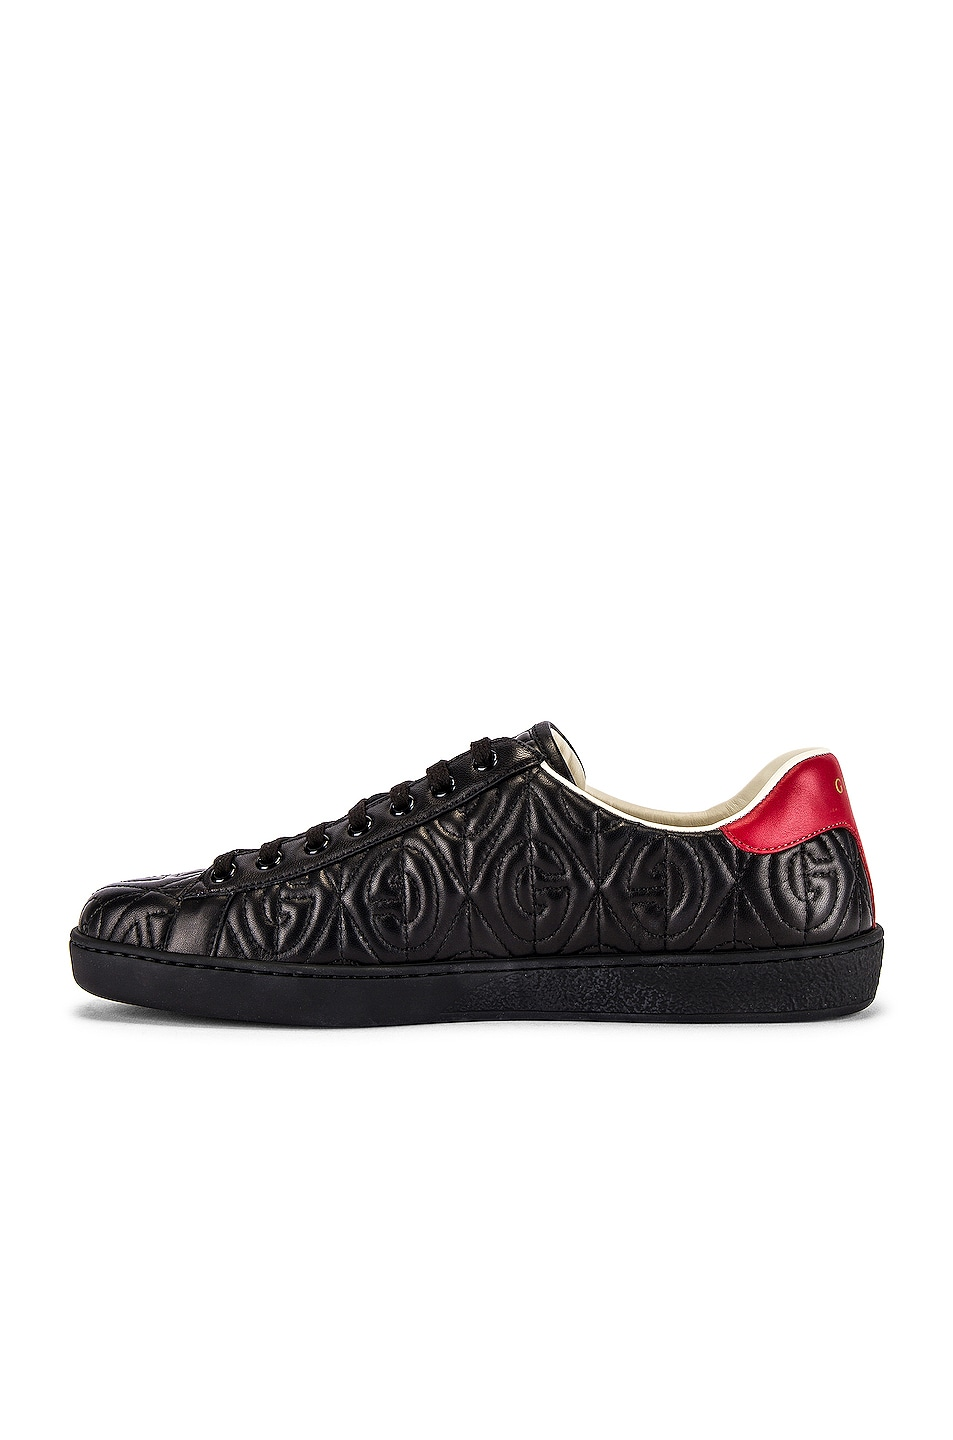 Image 5 of Gucci New Ace Sneaker in Black & Red Flame